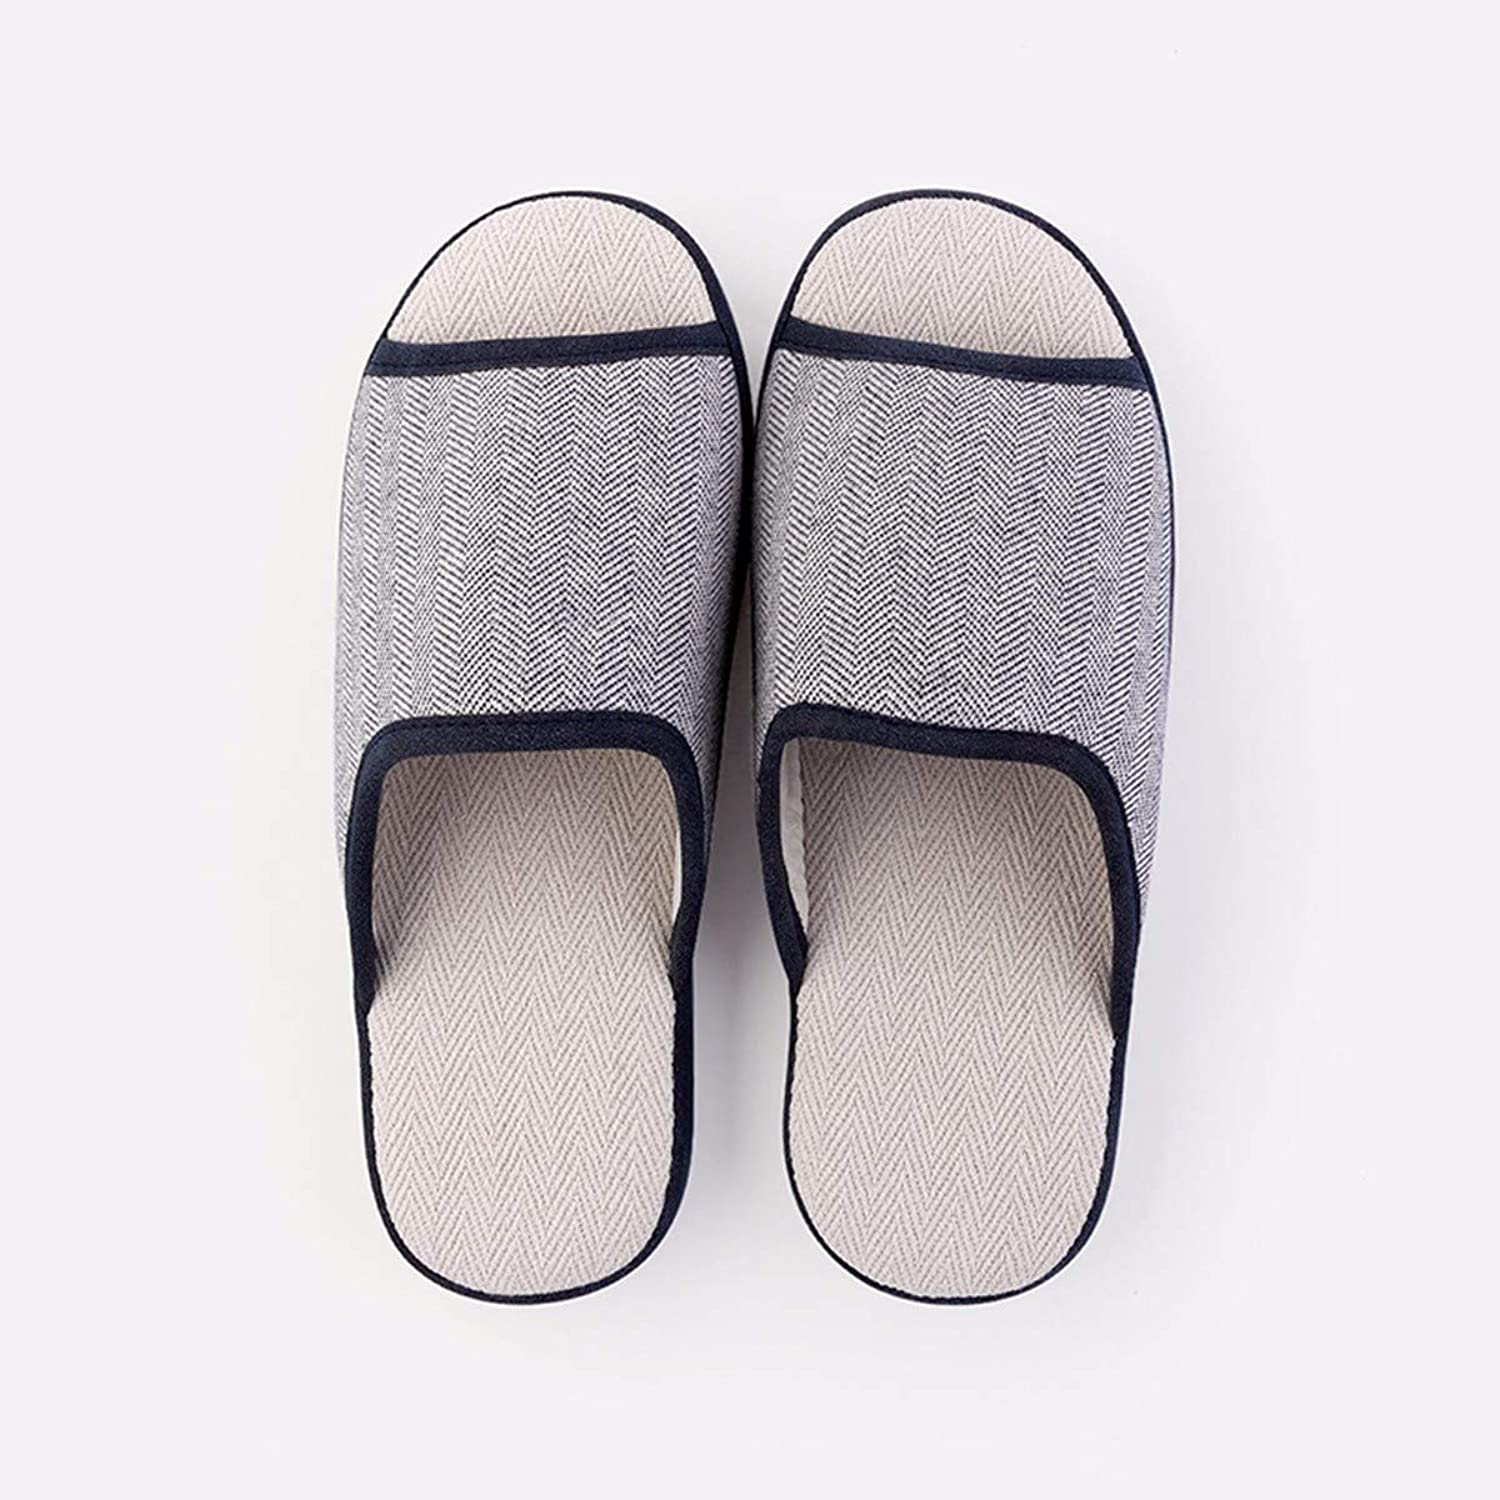 QPGGP-Slippers in The Spring and Autumn, Indoor Couples, Cotton Slippers, Female Slippers, Wear Resistant, Thick Sole, Cotton and Hemp Slippers, Men's Style.